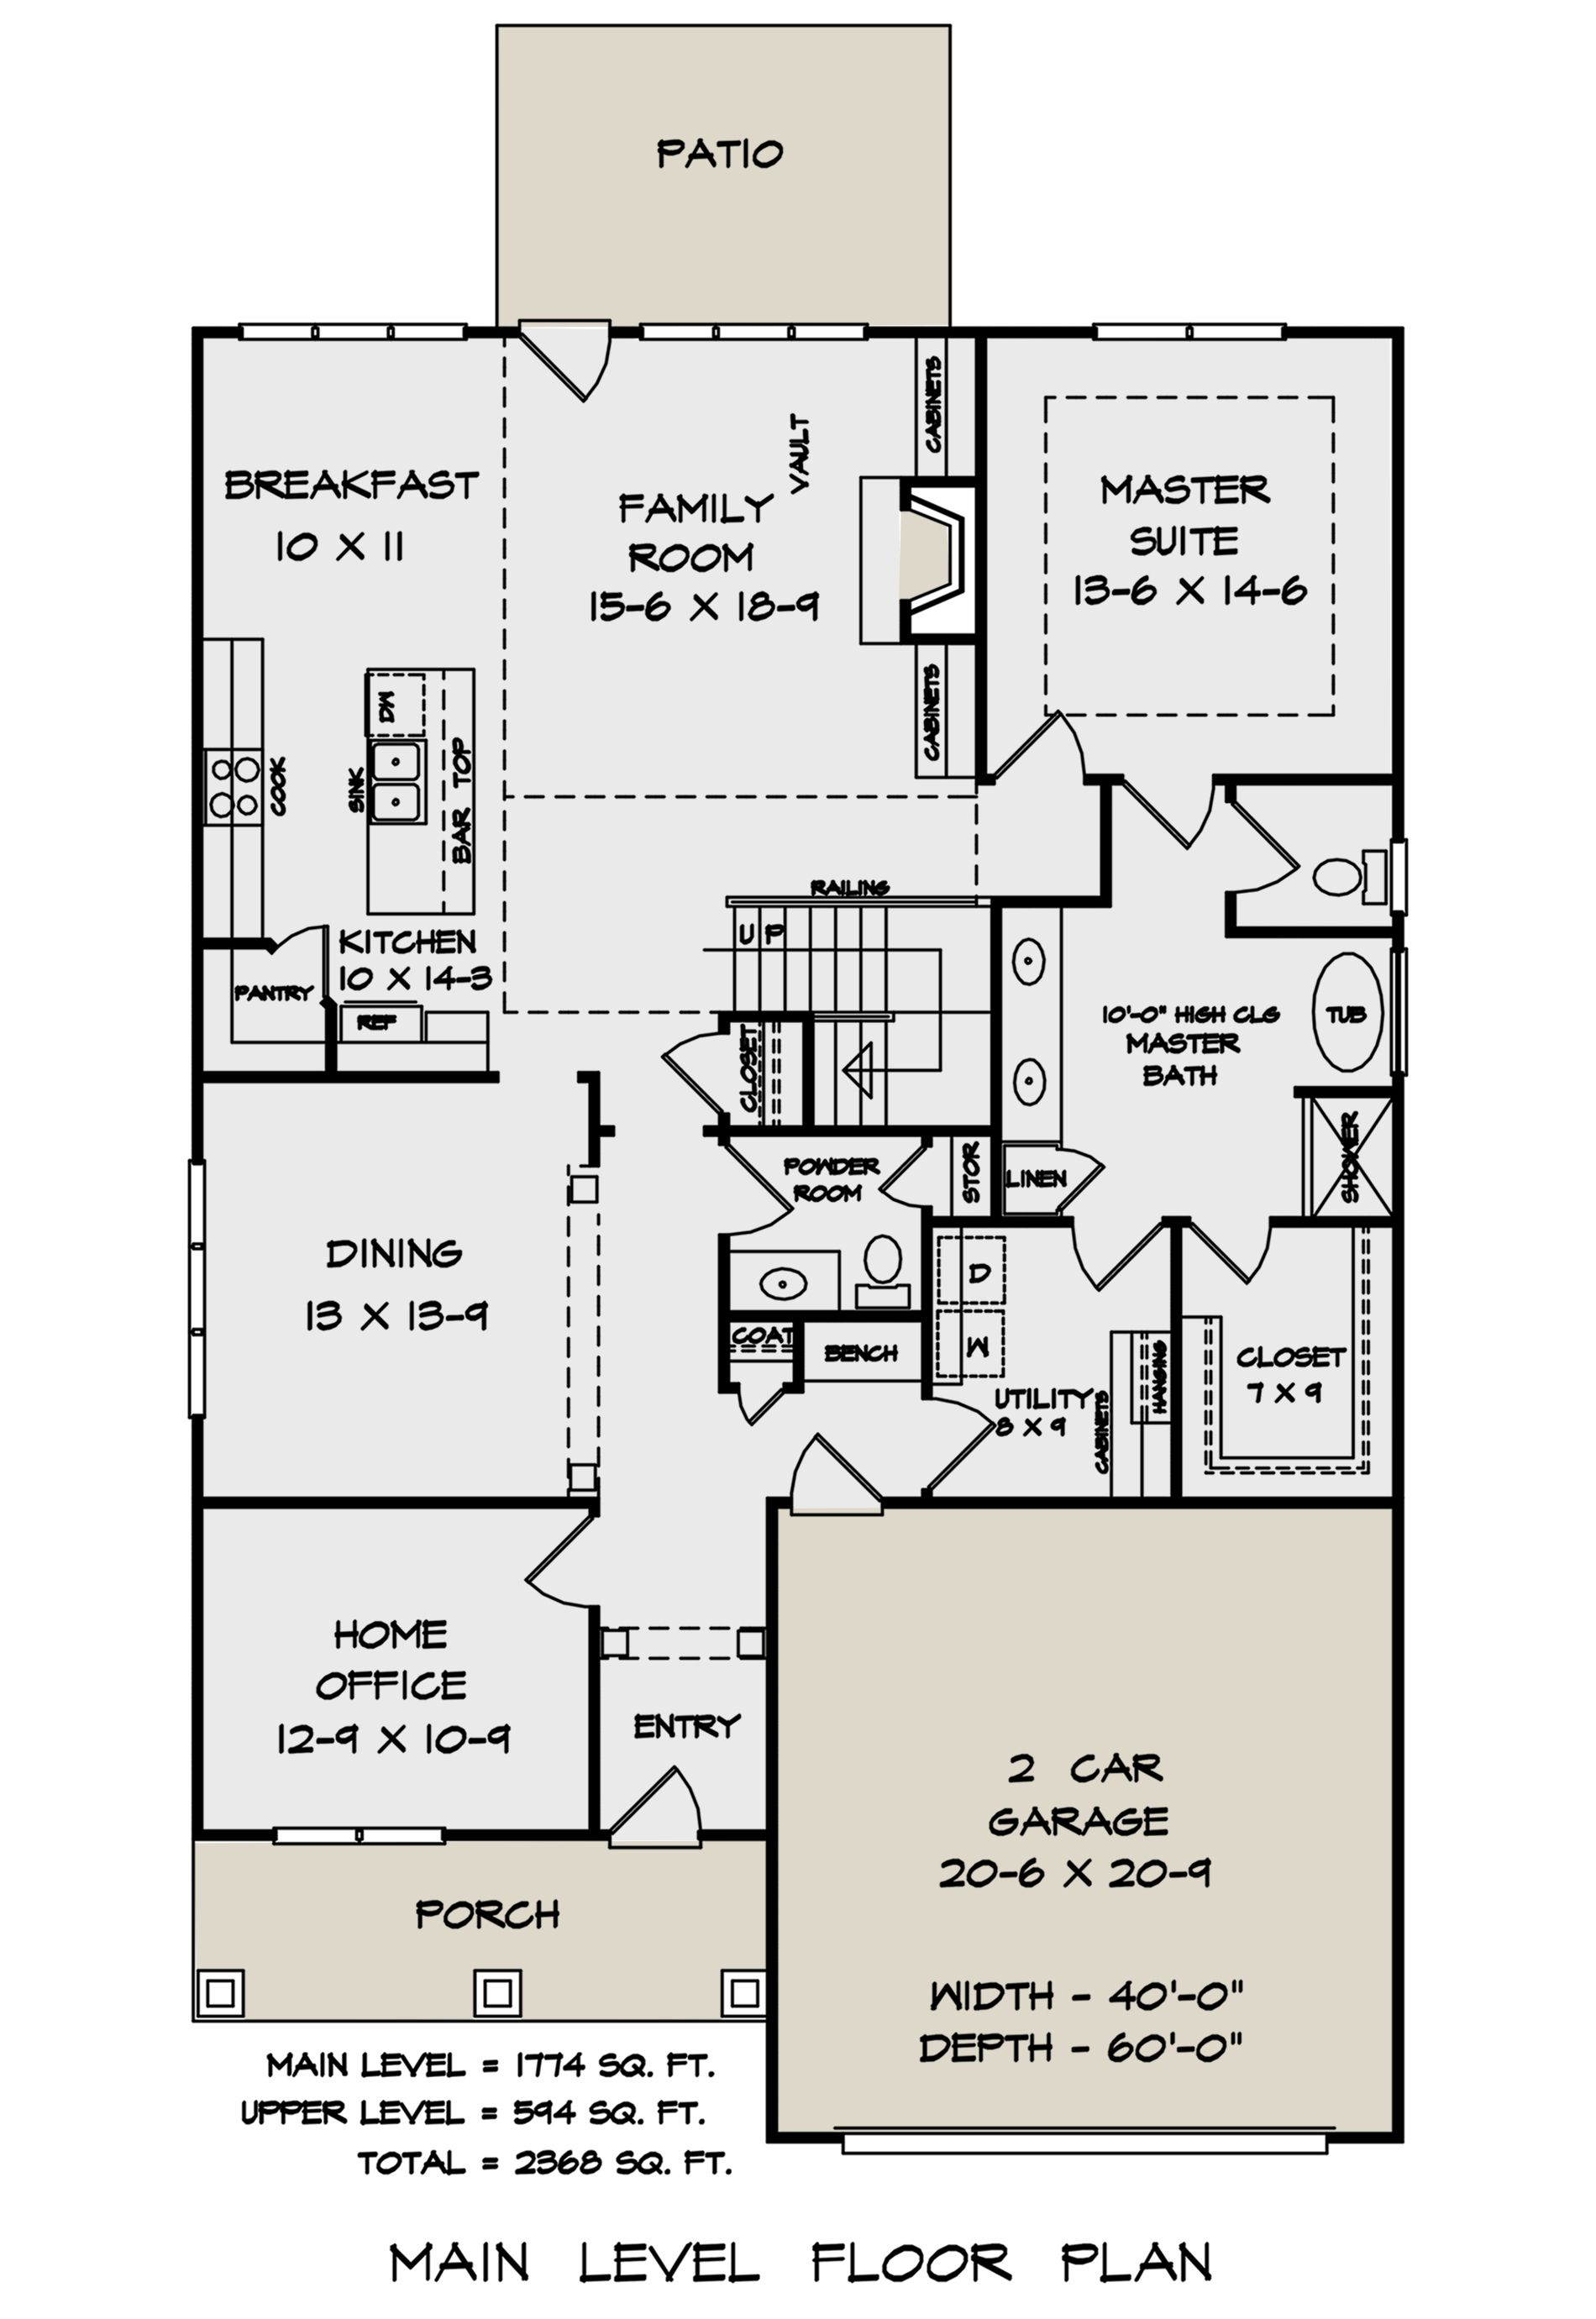 House Plan 6082 00151 Craftsman Plan 2 368 Square Feet 3 Bedrooms 2 5 Bathrooms 5 Bedroom House Plans Narrow Lot House Plans Small House Interior Design